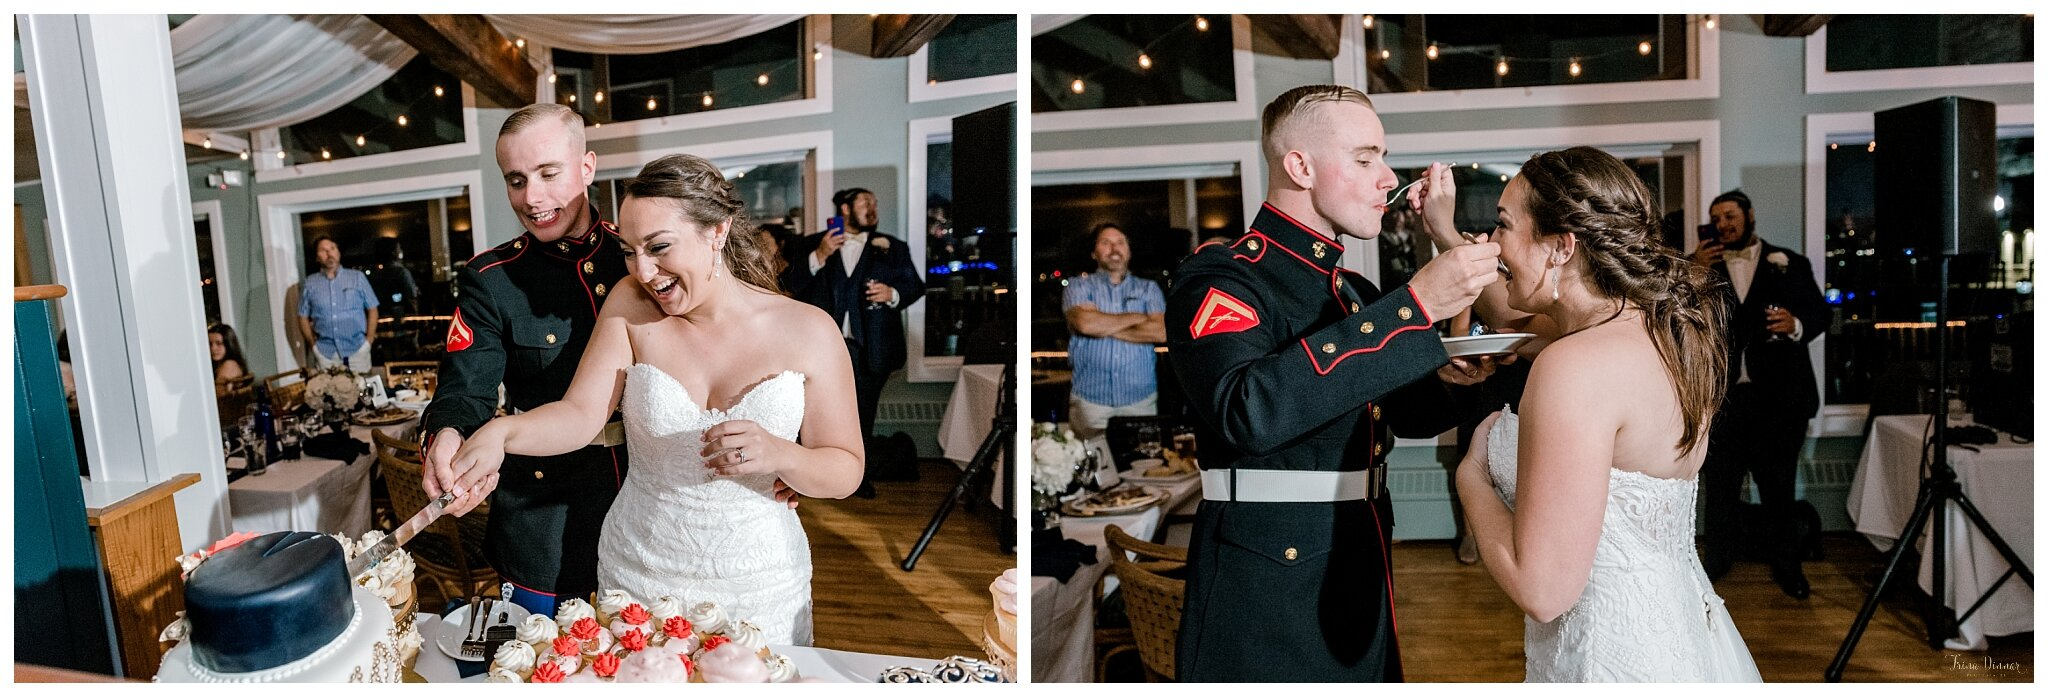 Cake Cutting During Saltwater Grille South Portland, Maine Wedding